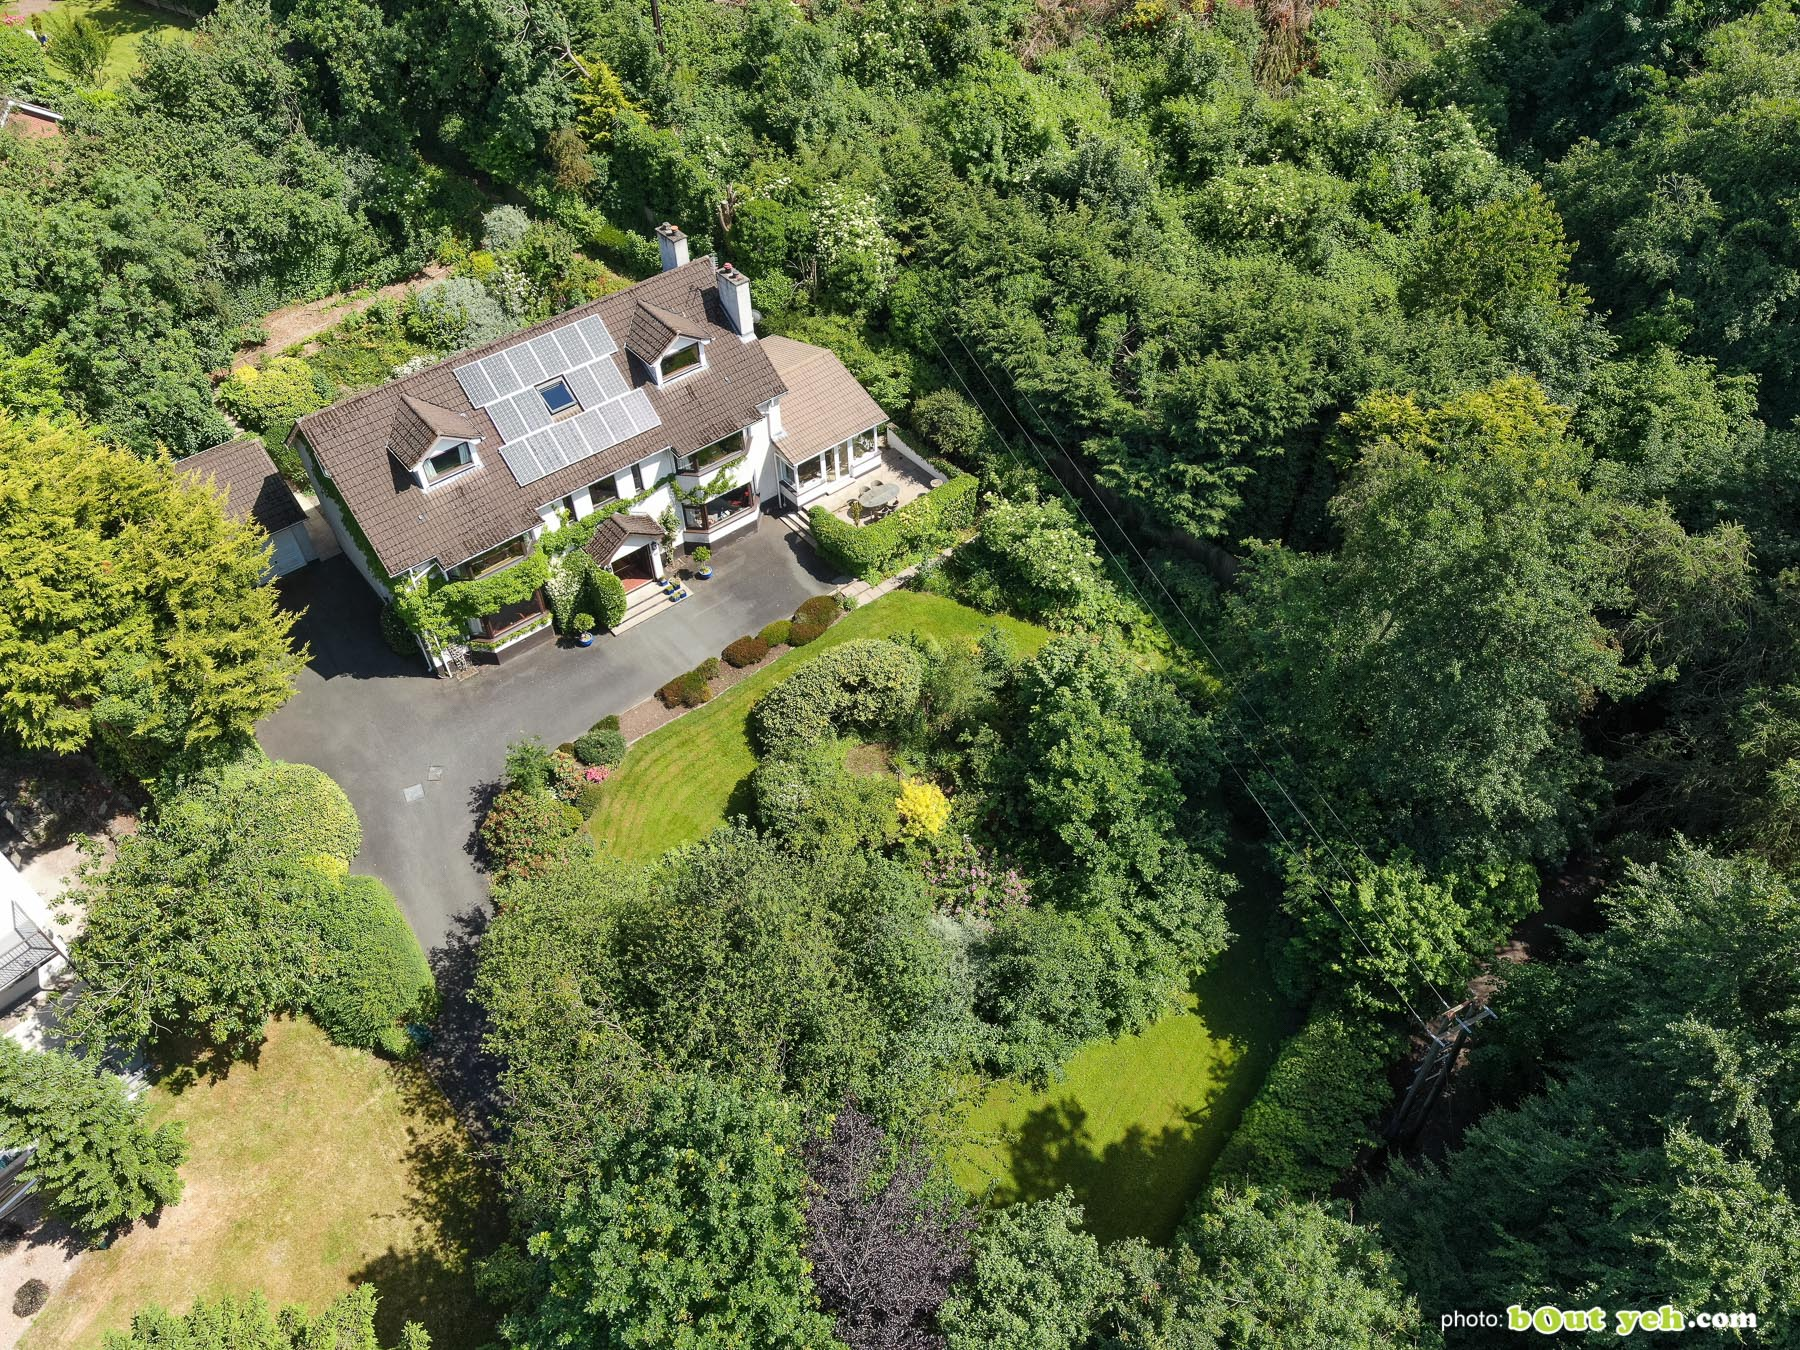 Aerial photo of 2 Glenside, for Templeton Robinson Estate Agents - drone photography and video by Bout Yeh photographers Belfast. Photo 0010